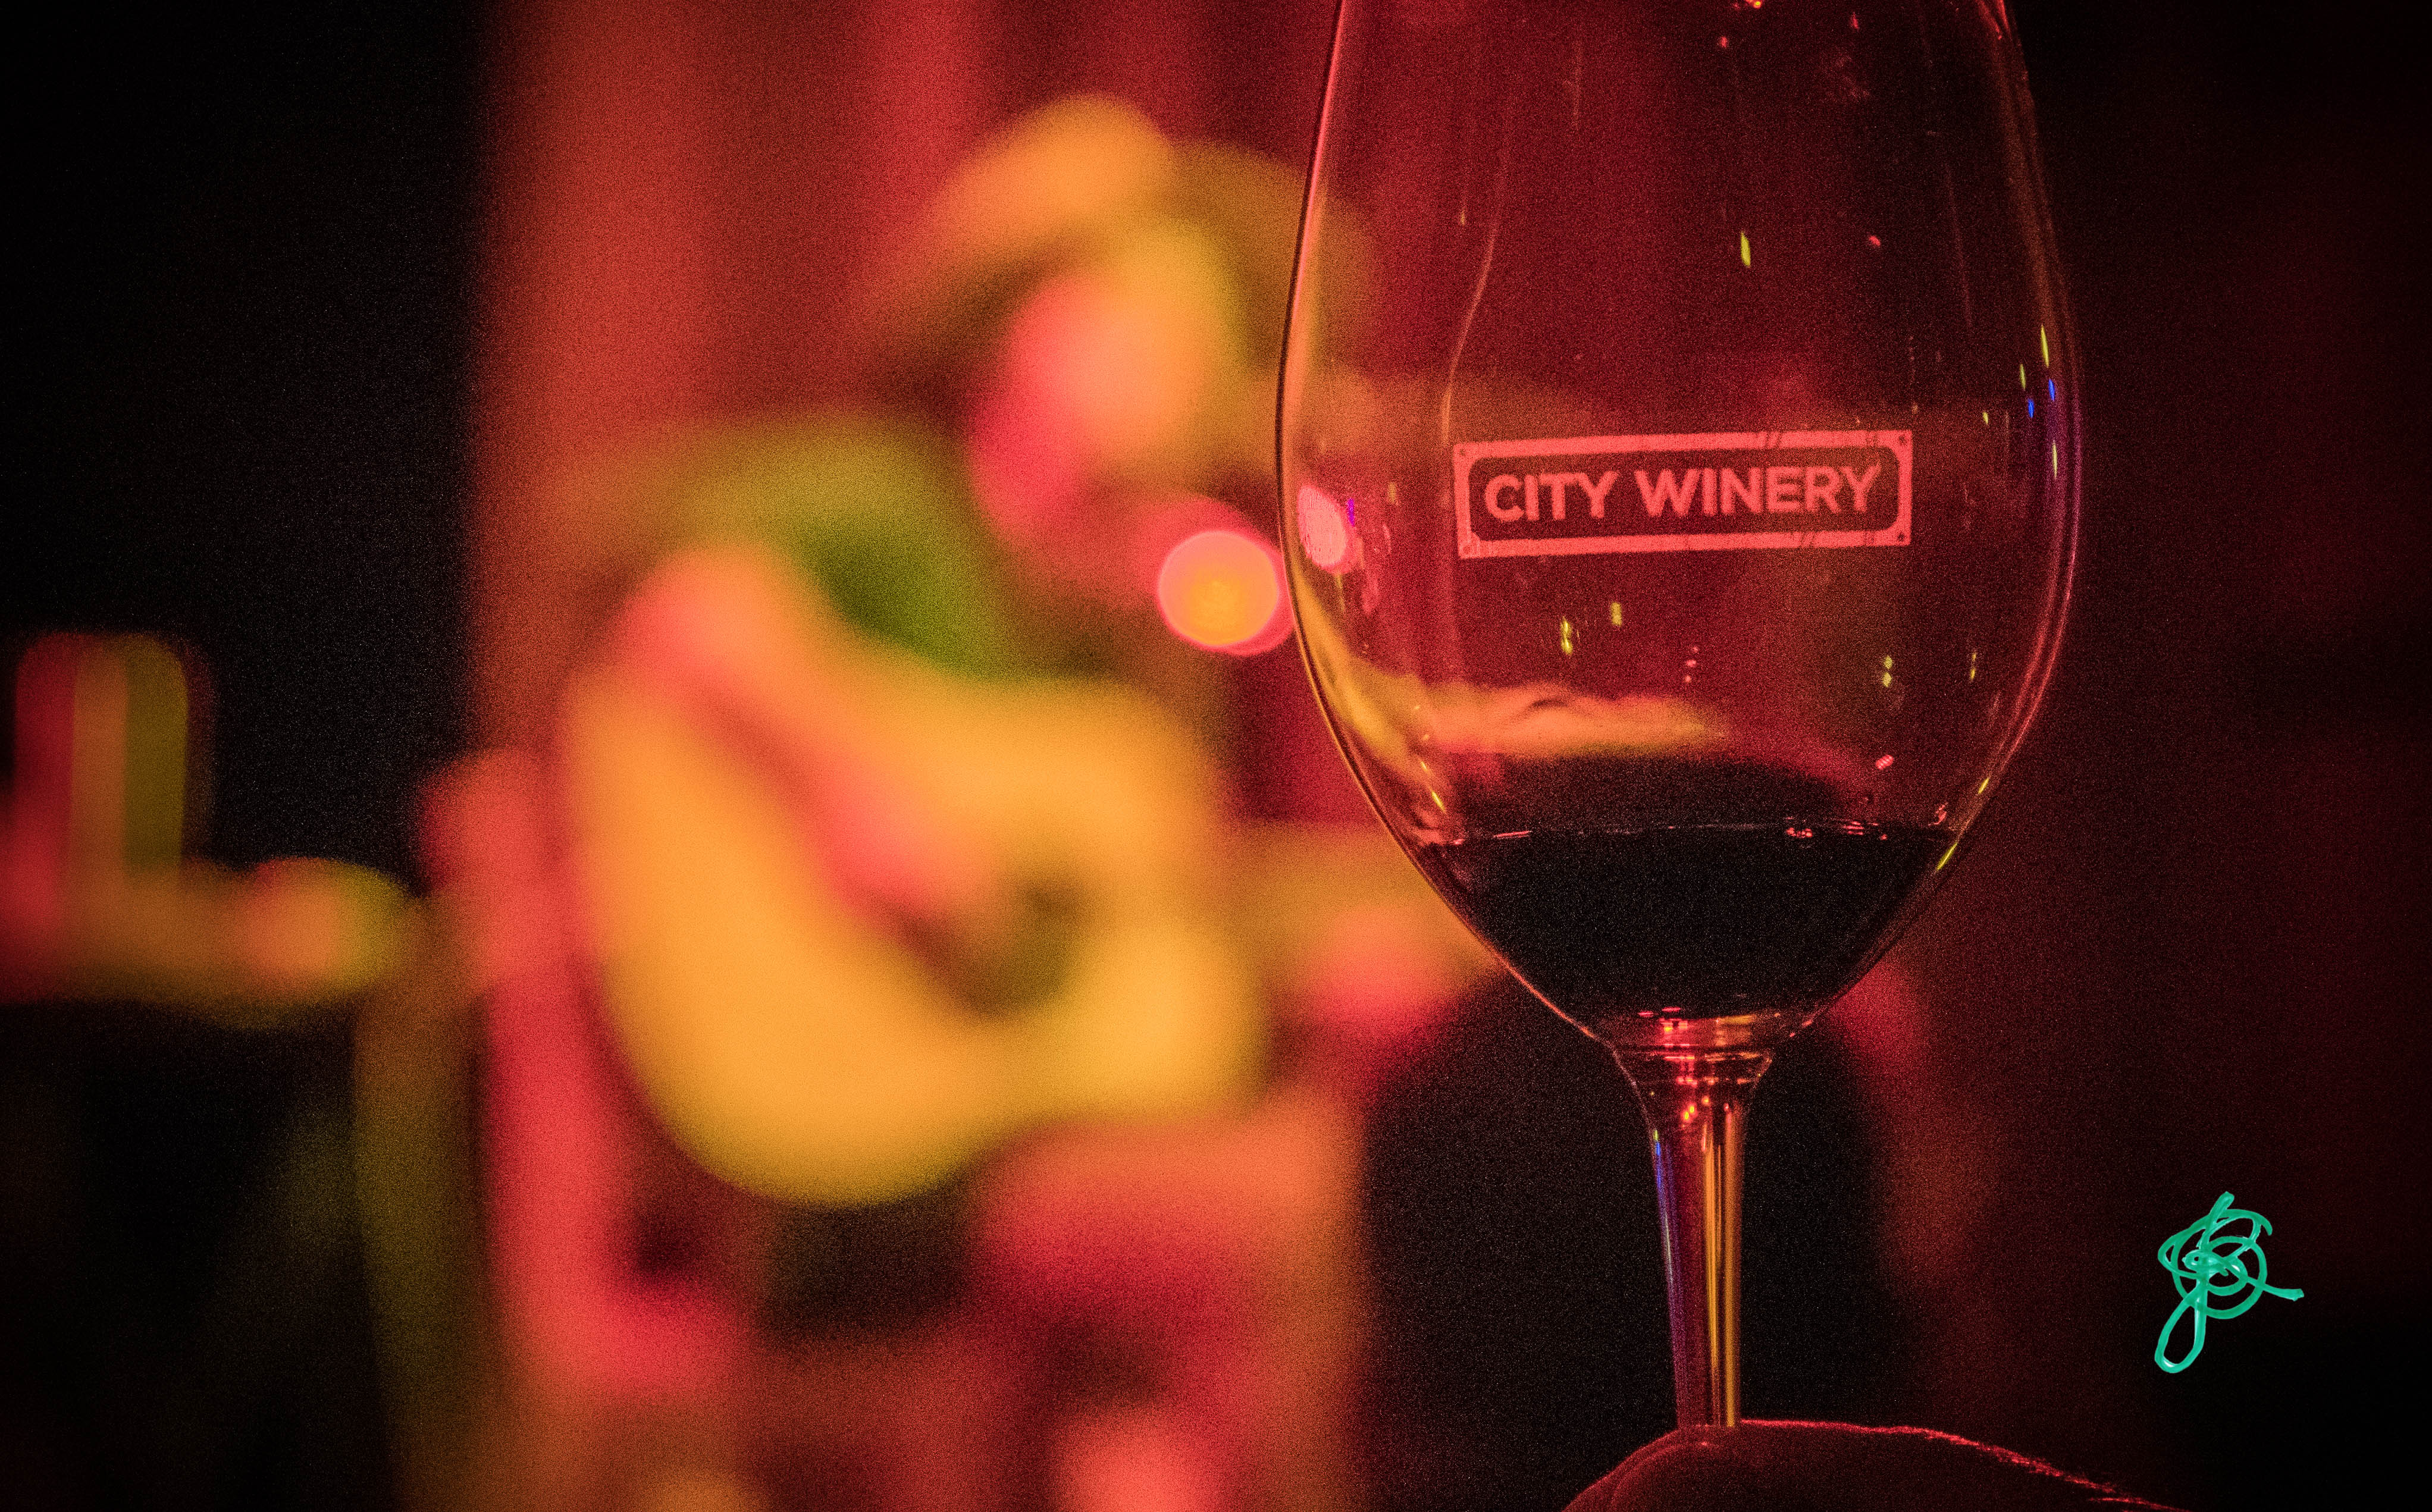 City Winery's West Loop Red Blend